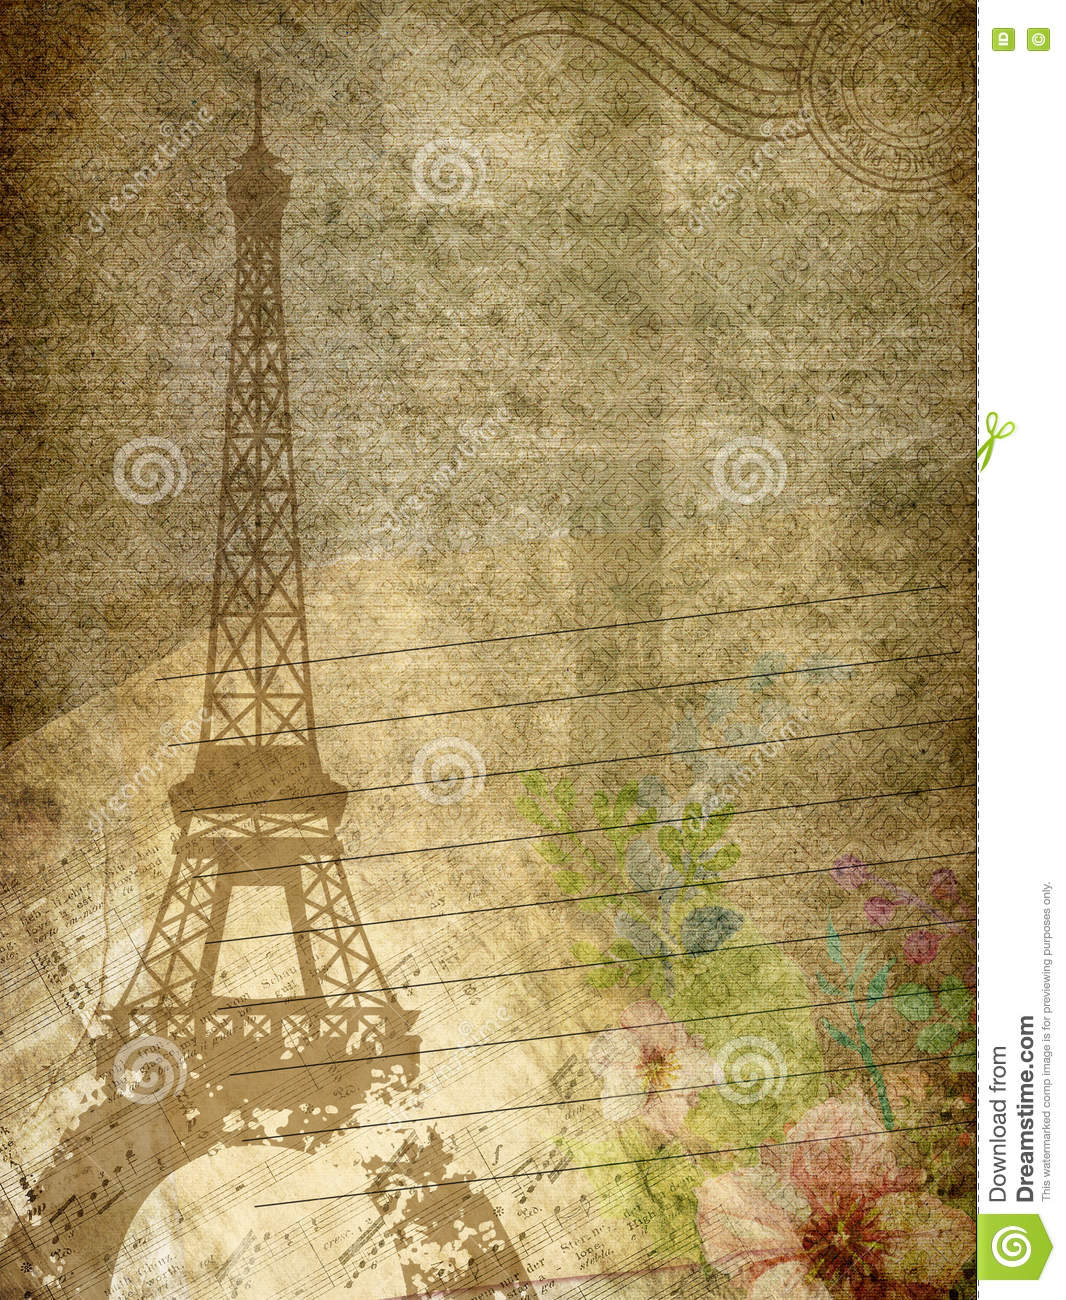 Grunge paper texture with eiffel towermusic note and flowers stock grunge paper texture with eiffel towermusic note and flowers mightylinksfo